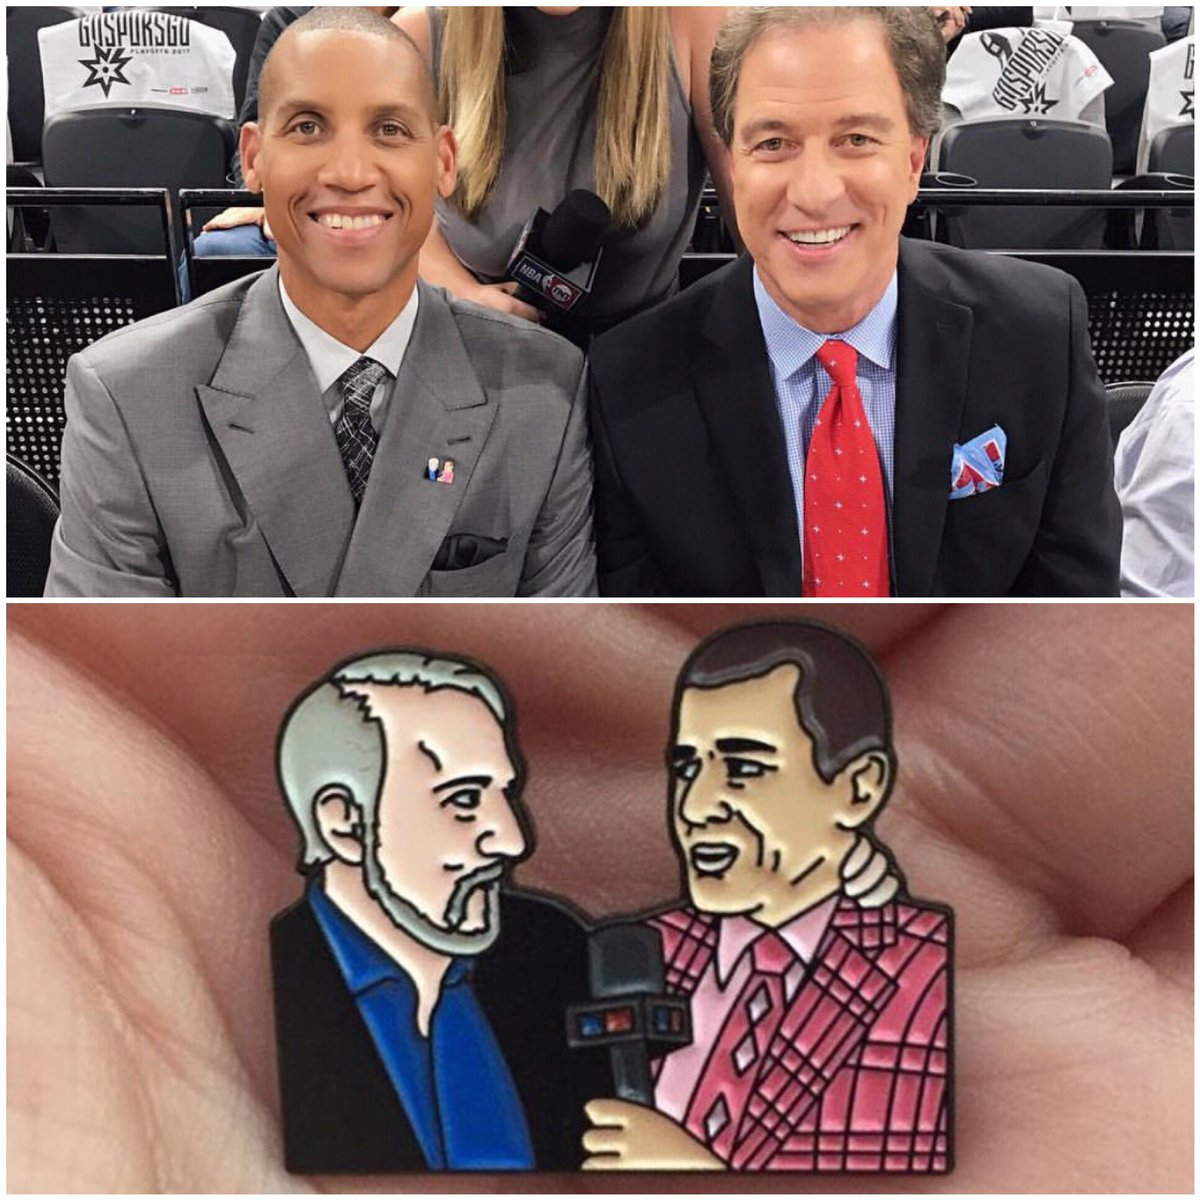 Reggie Miller is a garbage announcer, but since he's wearing a @PattiL...